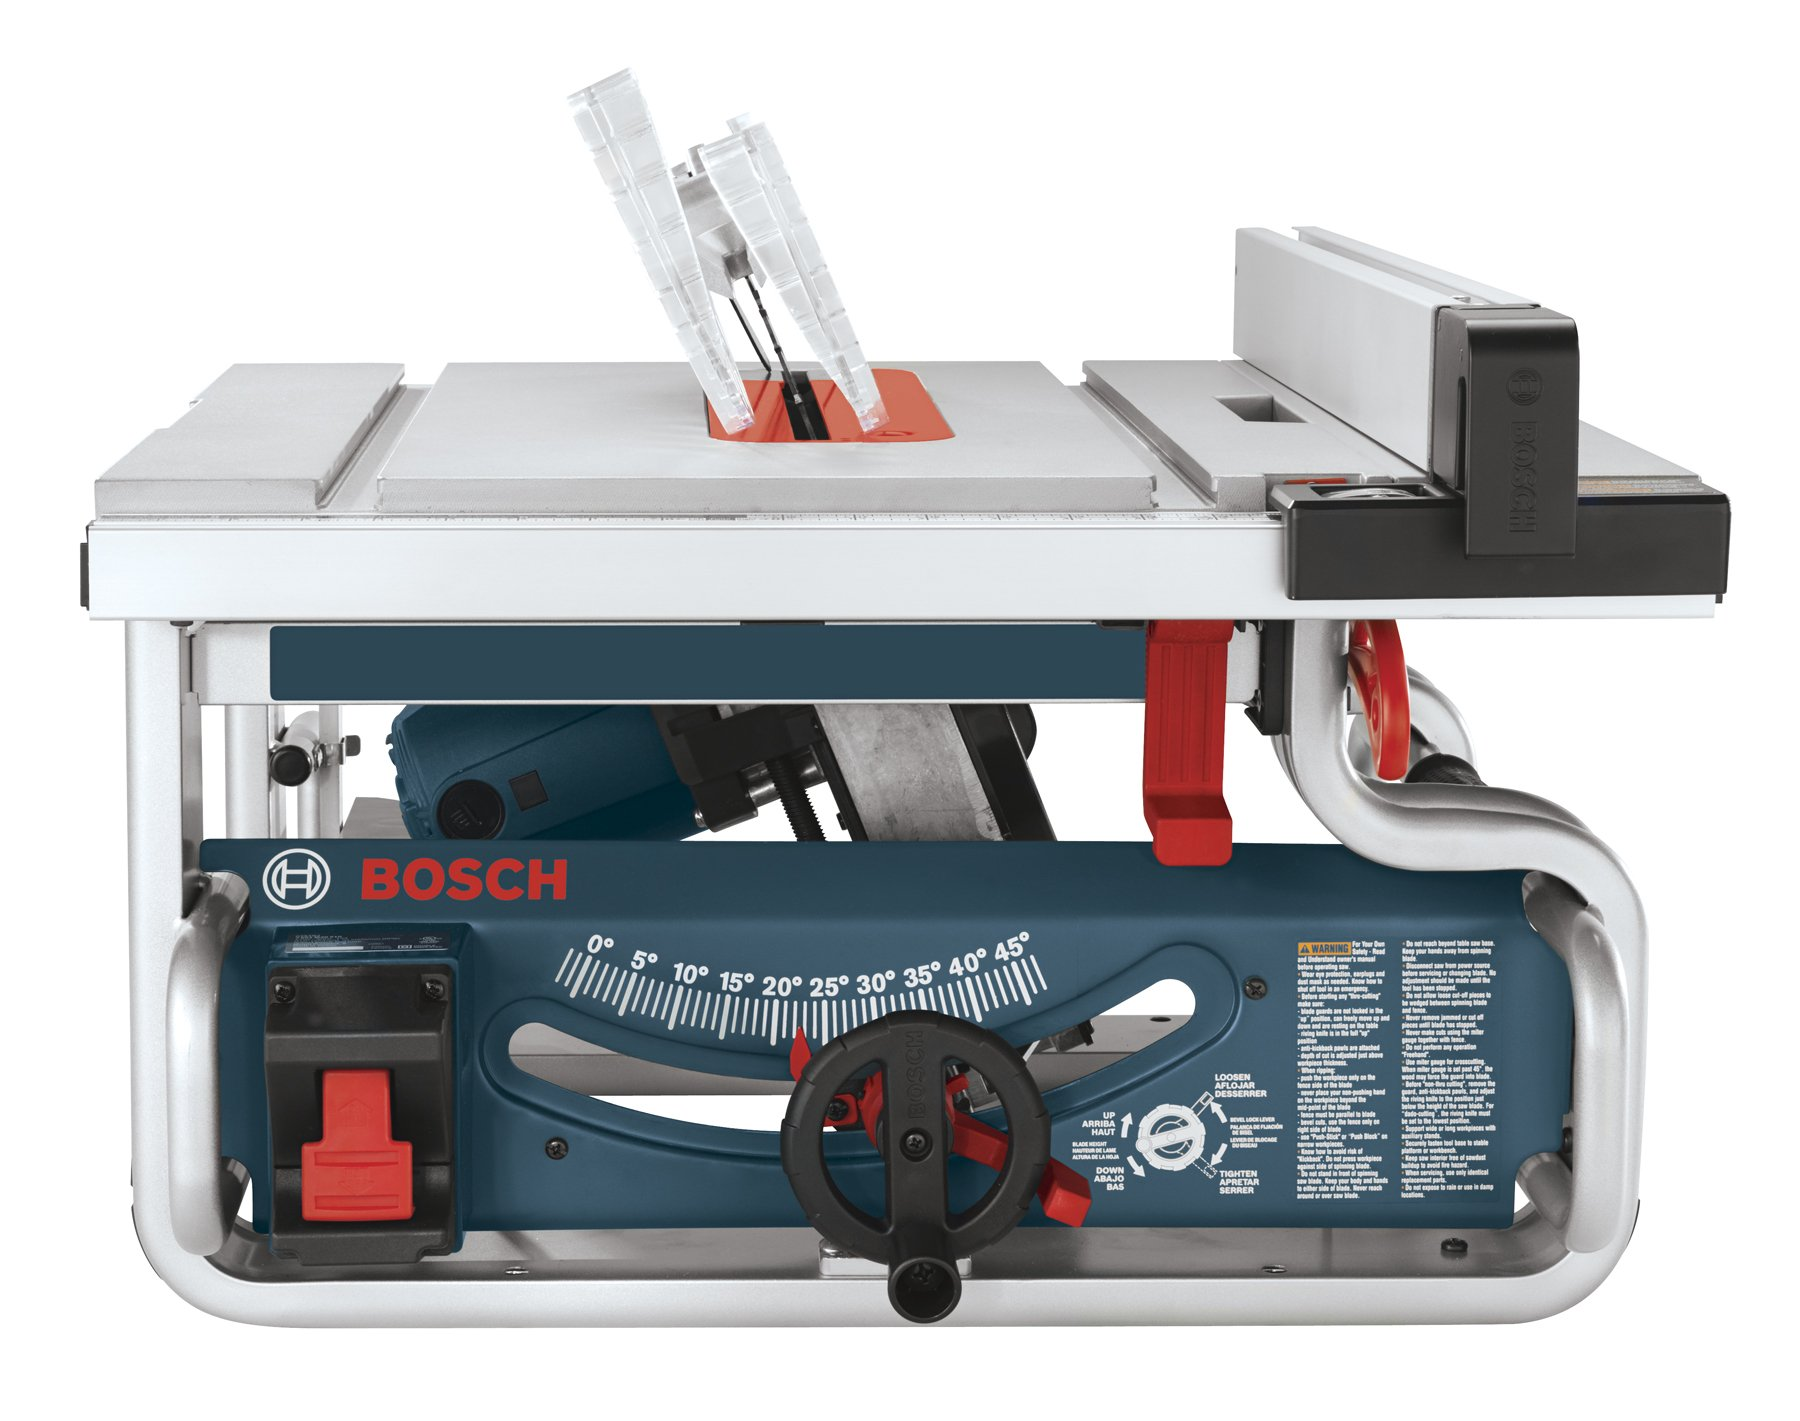 Bosch gts1031 10 inch portable jobsite table saw ebay for 10 jobsite table saw